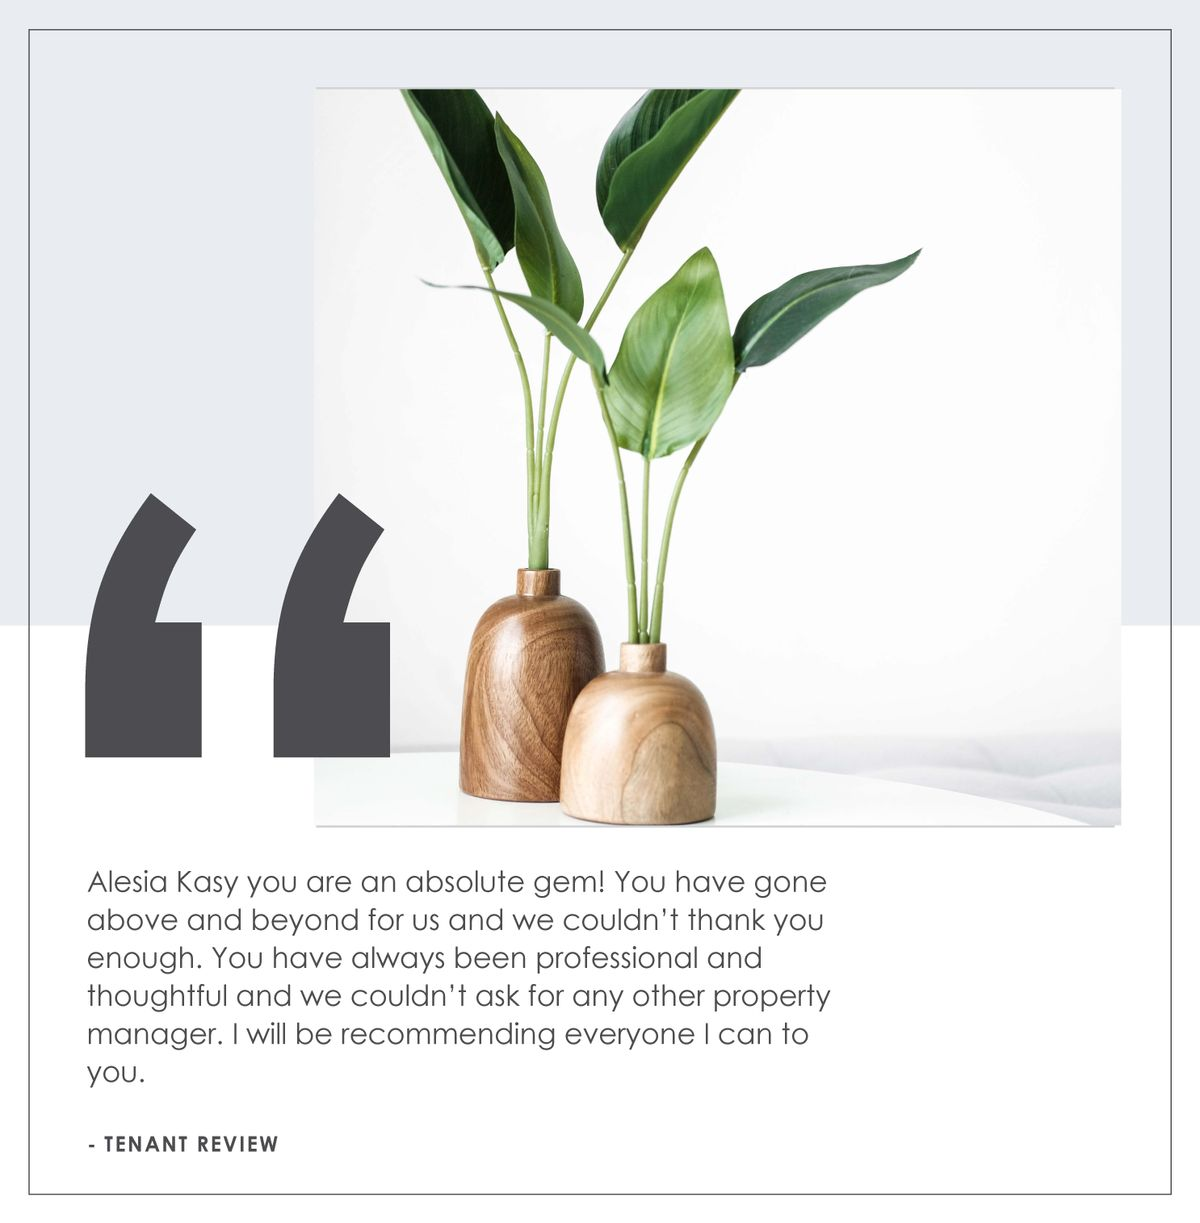 Testimonial with plant in background